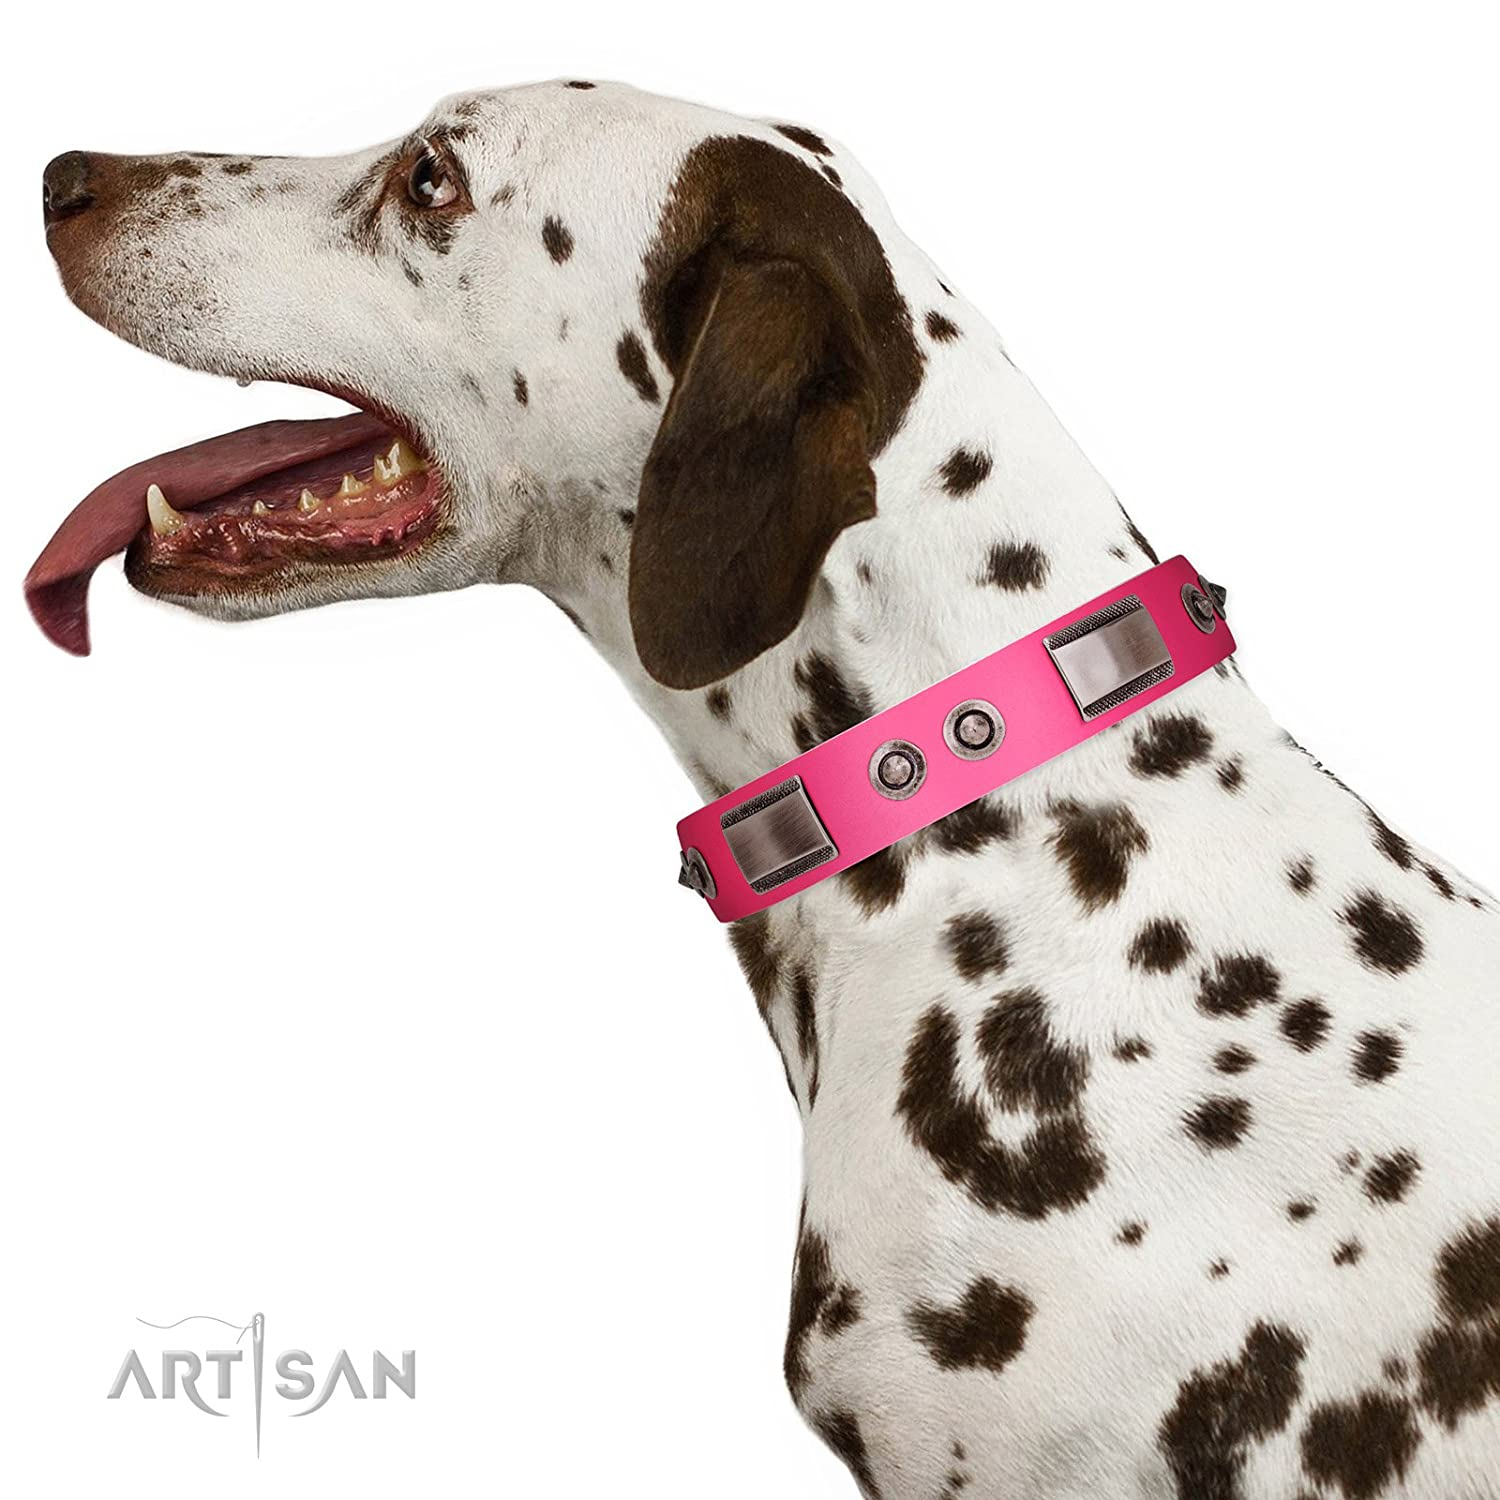 Fits for 30 inch (75cm) dog's neck size 30 inch FDT Artisan Lady's Whim Pink Leather Dog Collar with Plates and Spiked Studs